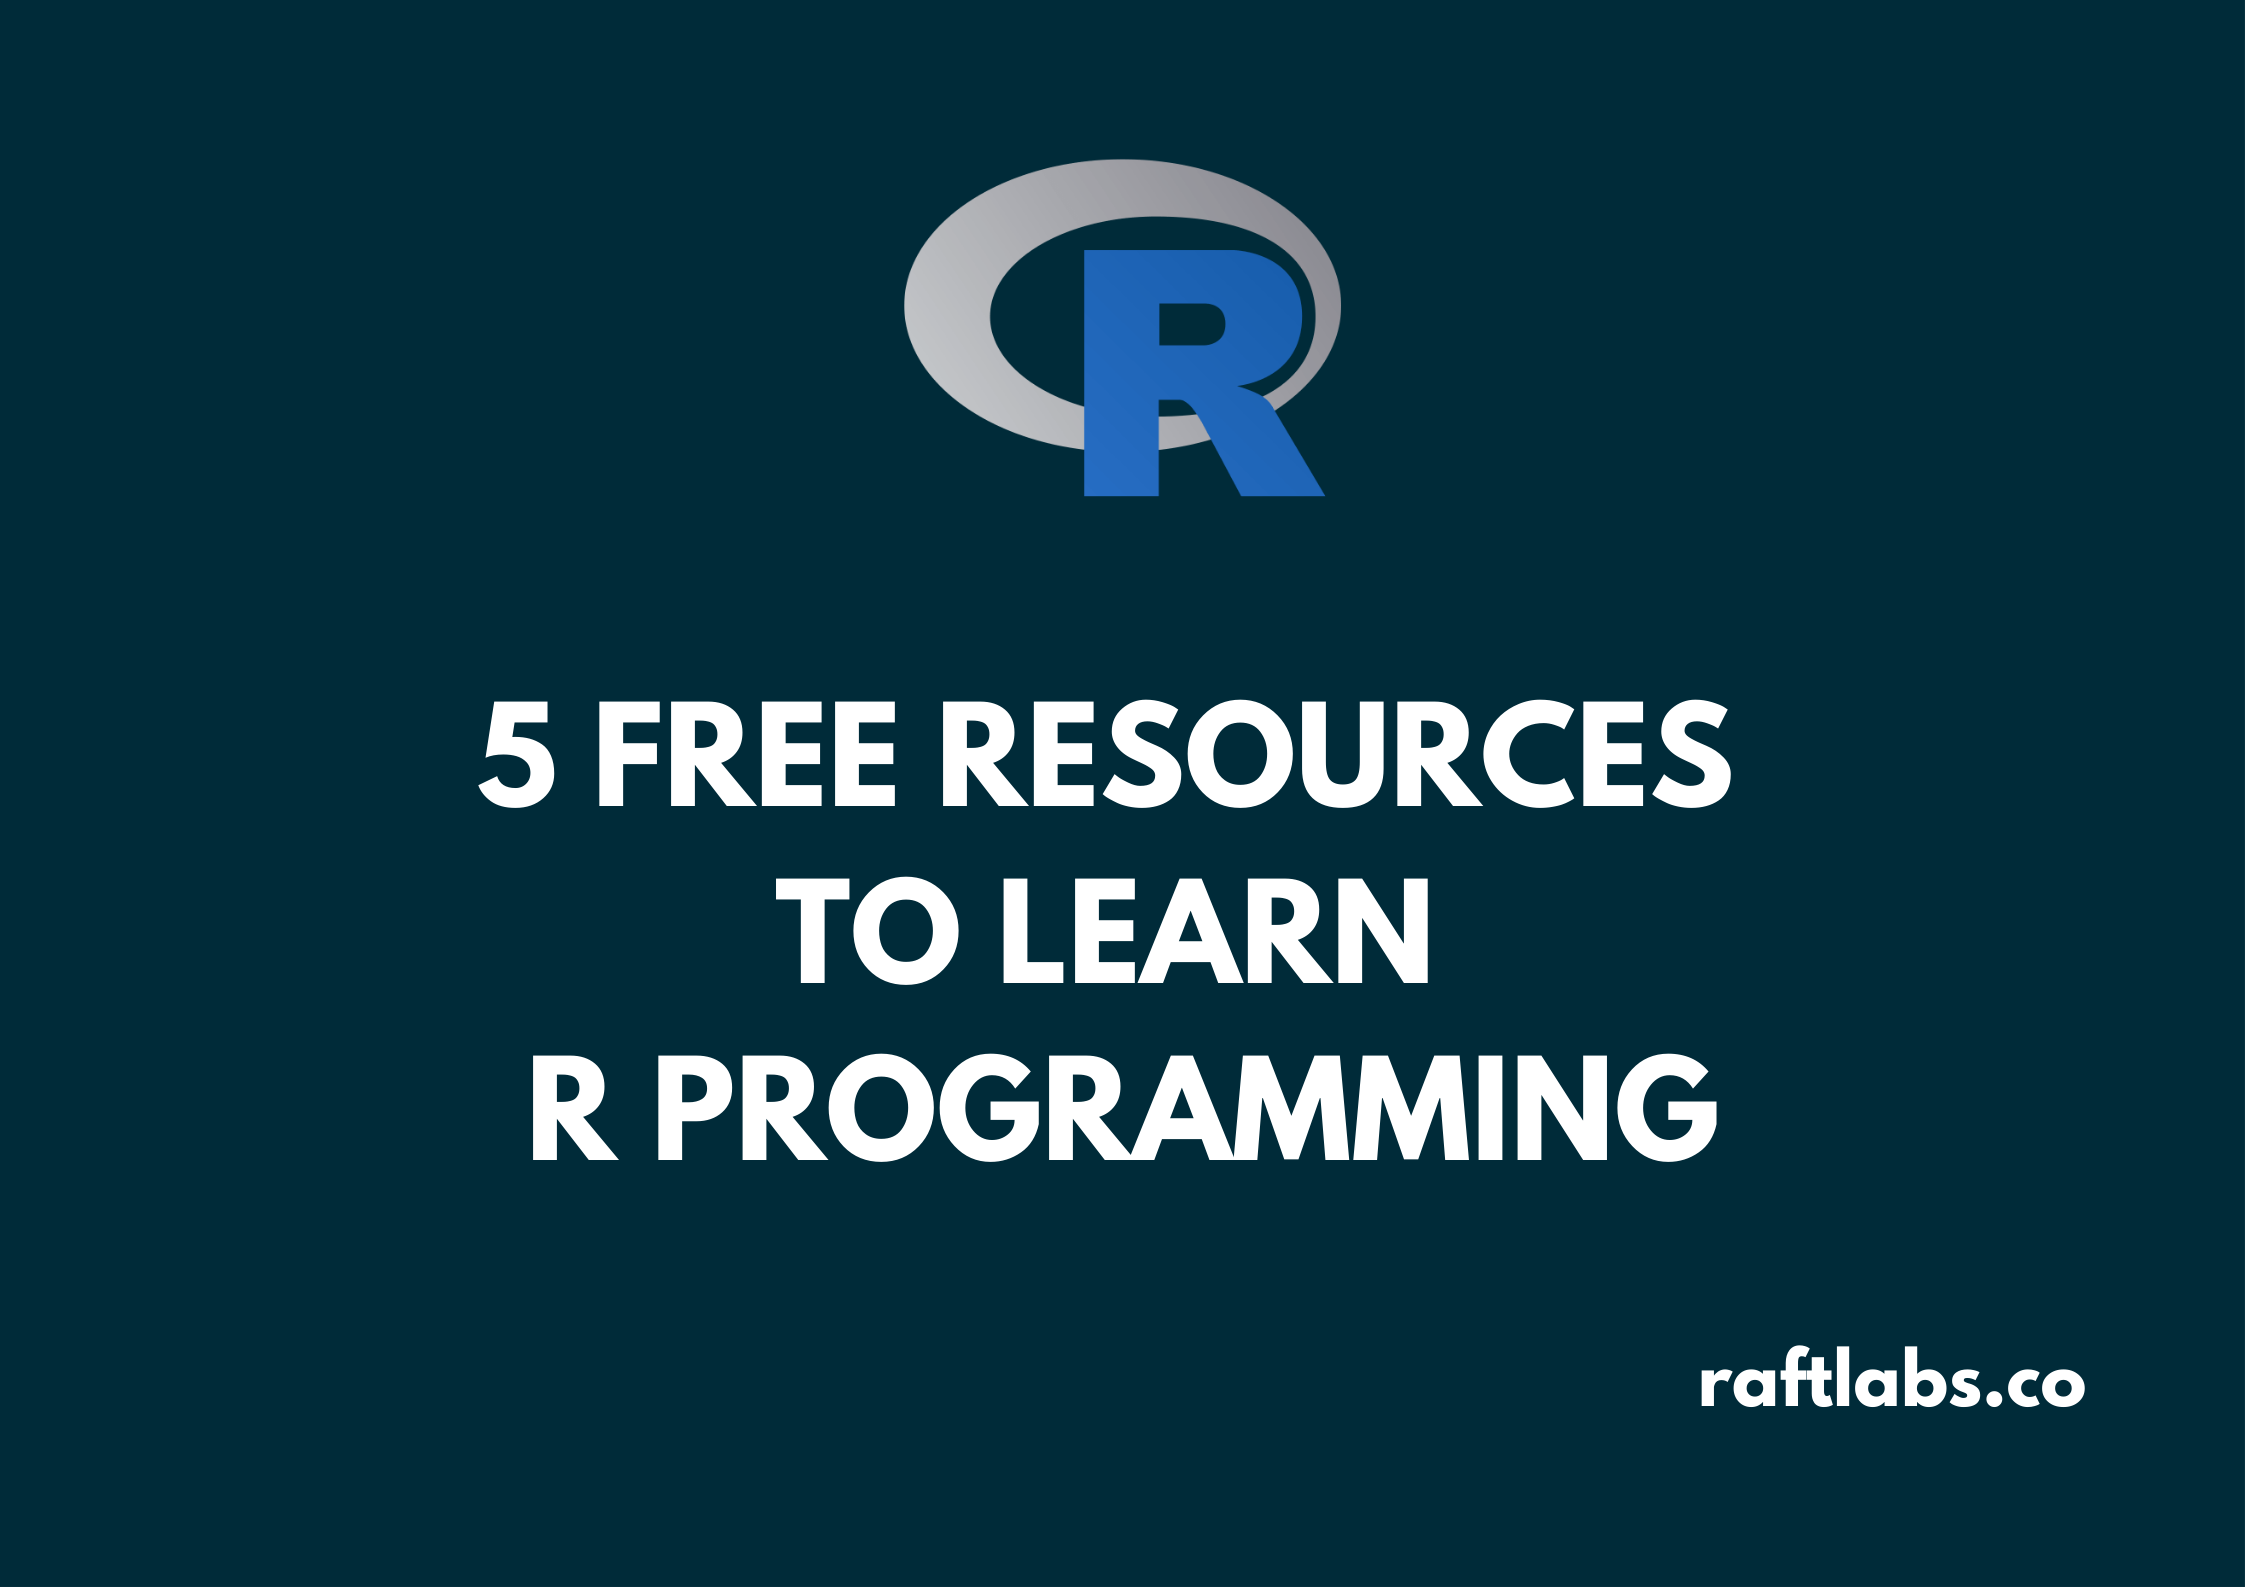 Thumbnail of free resources to learn R